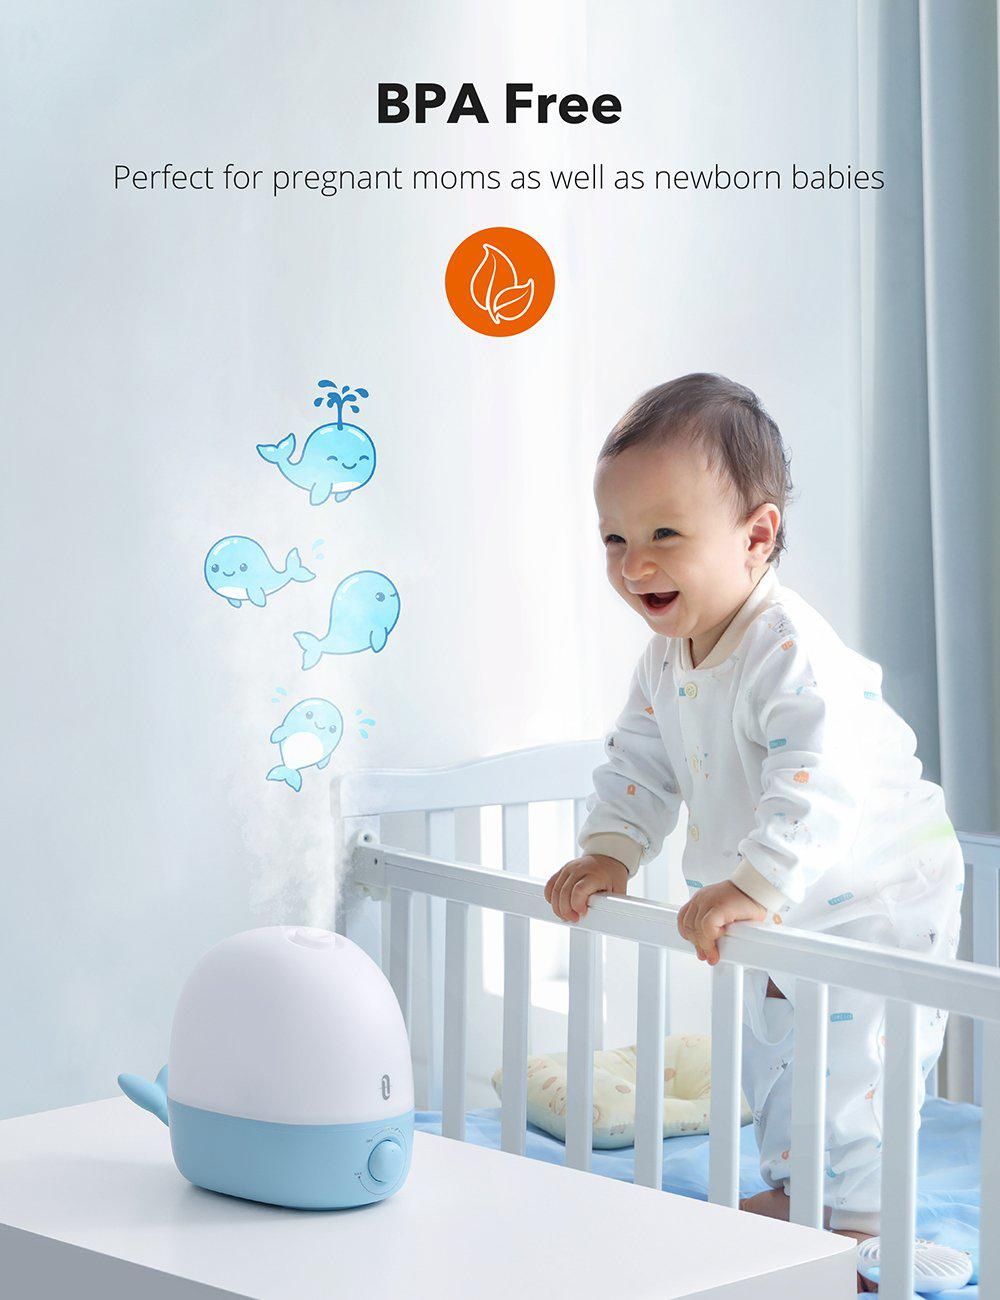 TaoTronics BPA-free Humidifiers for Baby AH038 Gallery 6